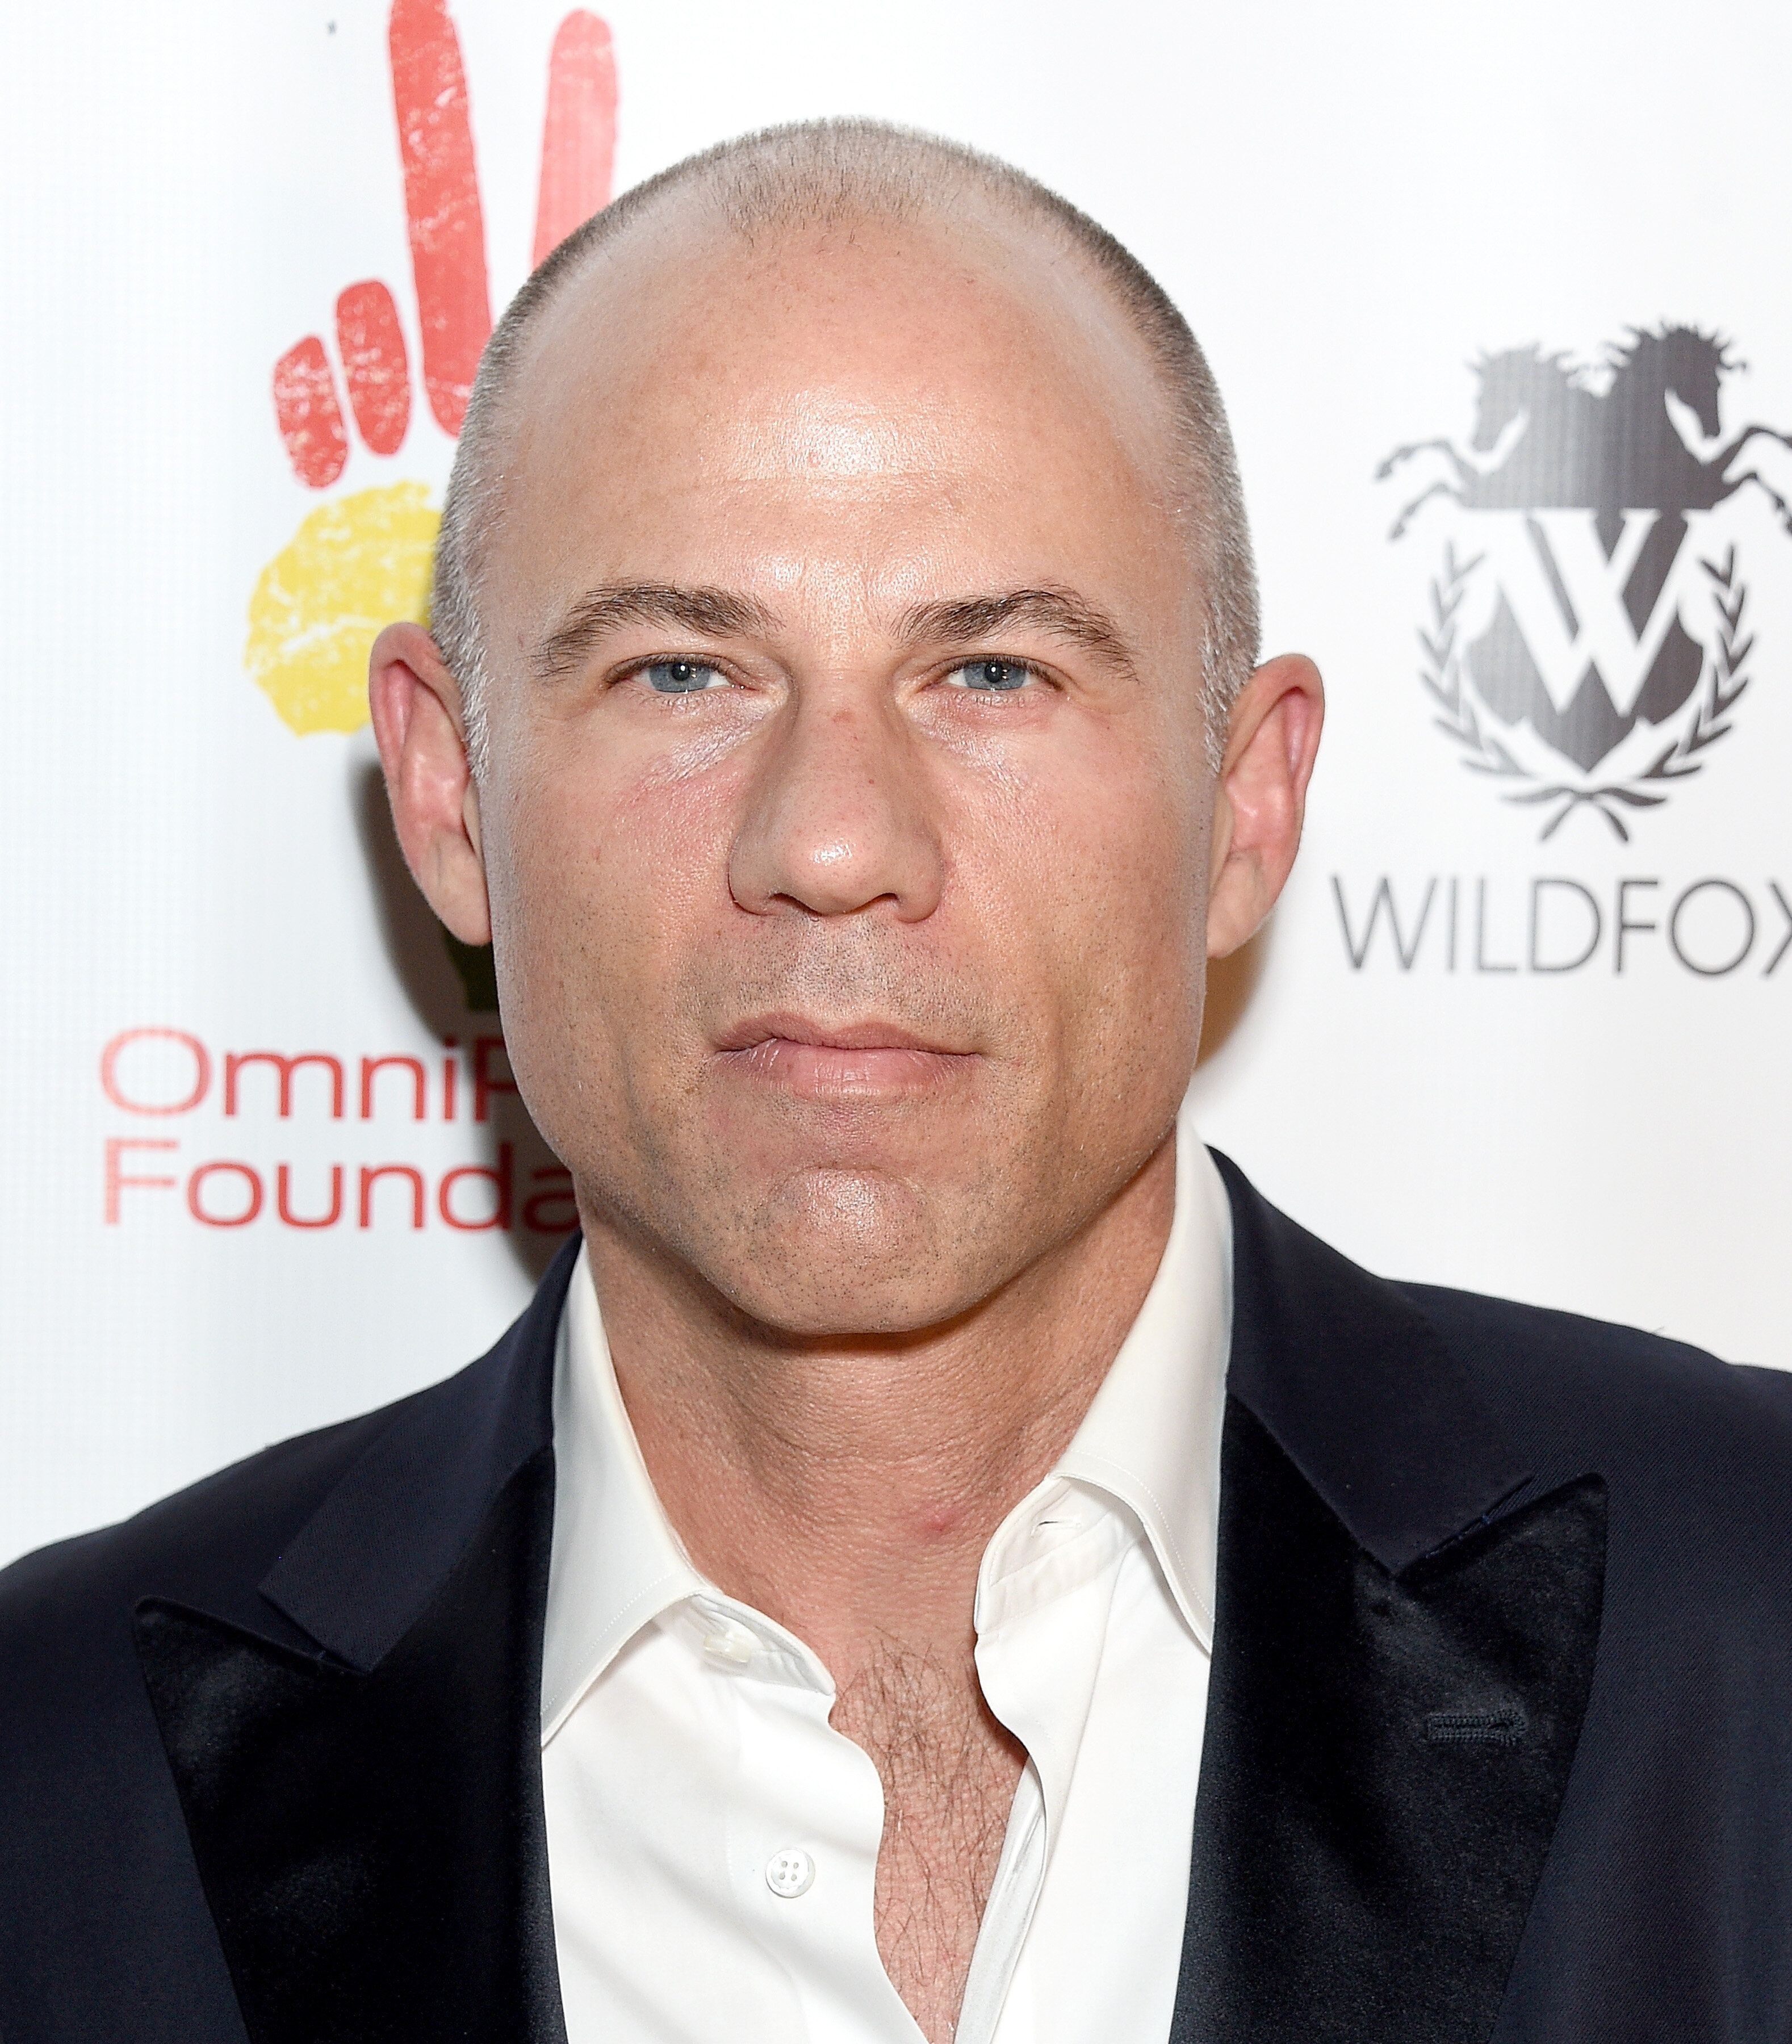 Michael Avenatti famouslyrepresented porn star Stormy Daniels in lawsuits against then-President Donald Trump. He was l